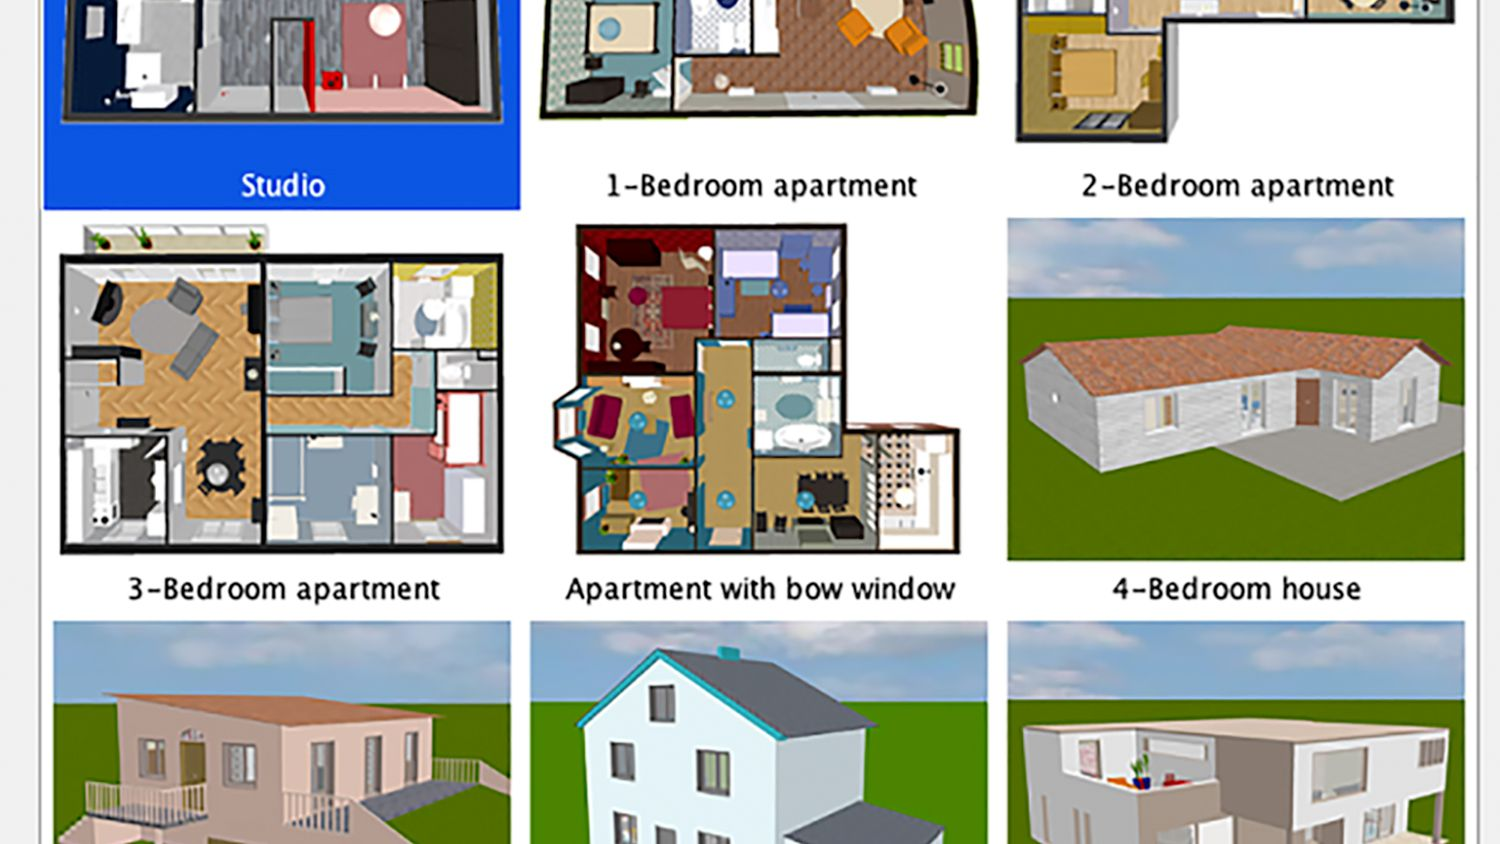 App to design 3d rooms. Sweet Home 3d Review Fun And Easy With Some Limitations